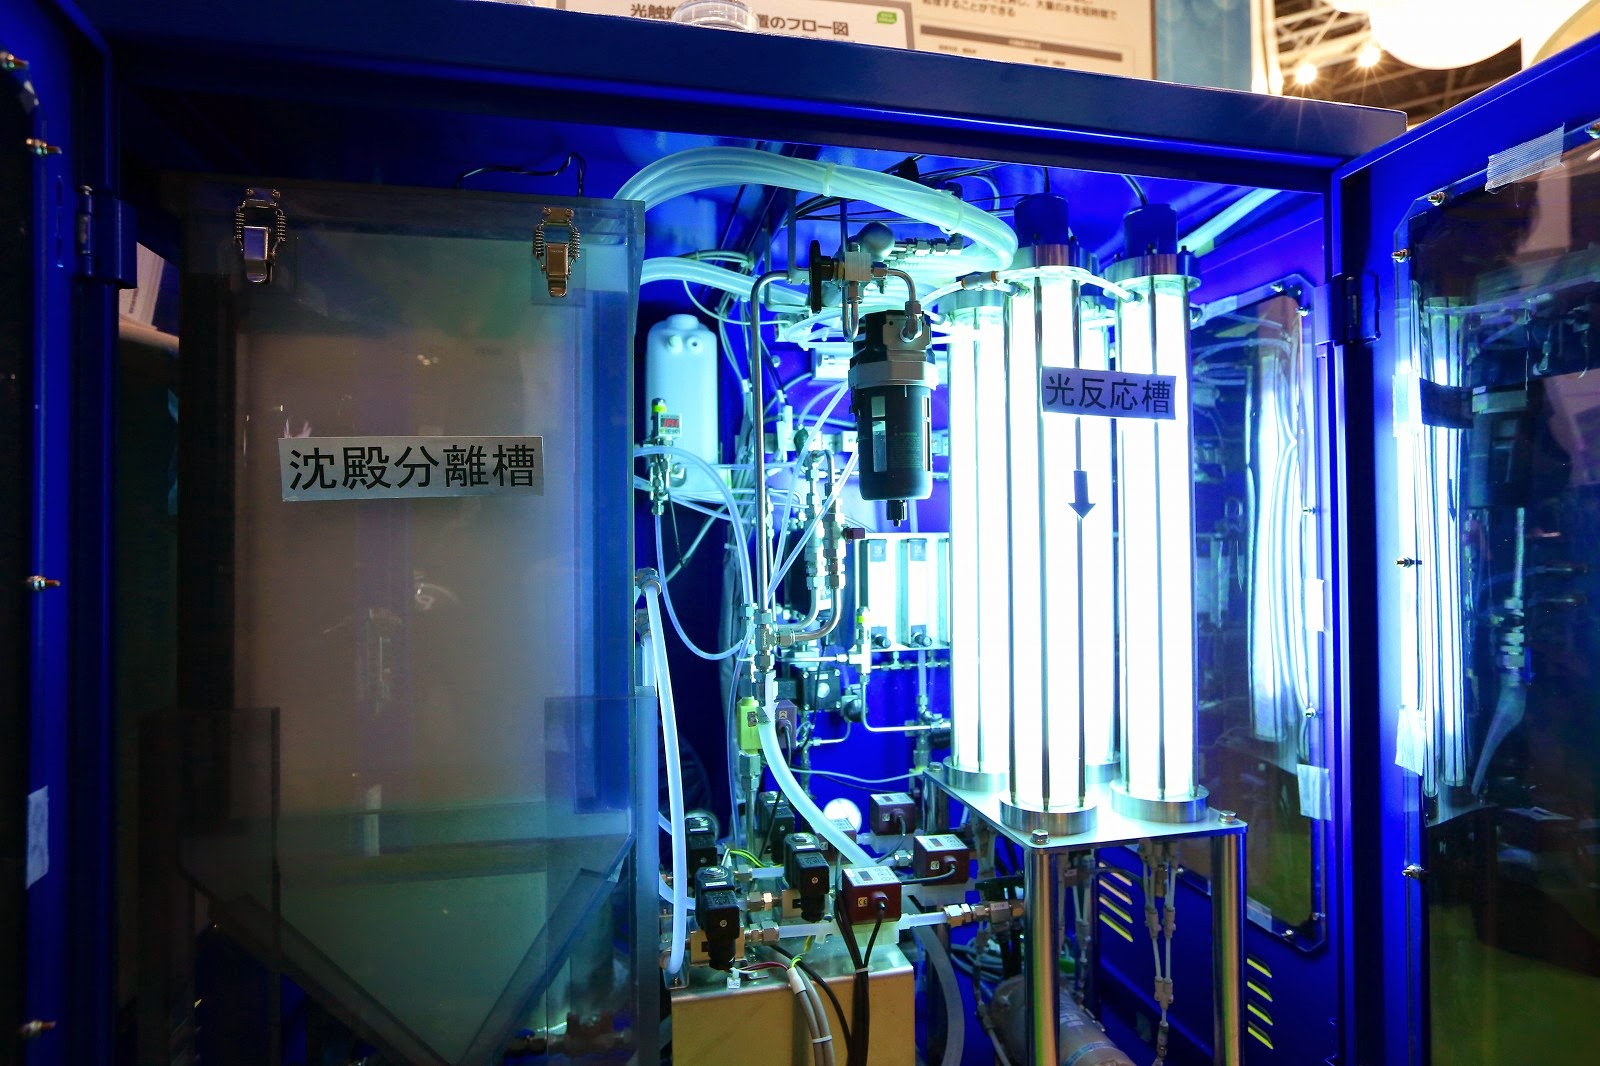 Panasonic Introduces Photocatalytic Water Purification